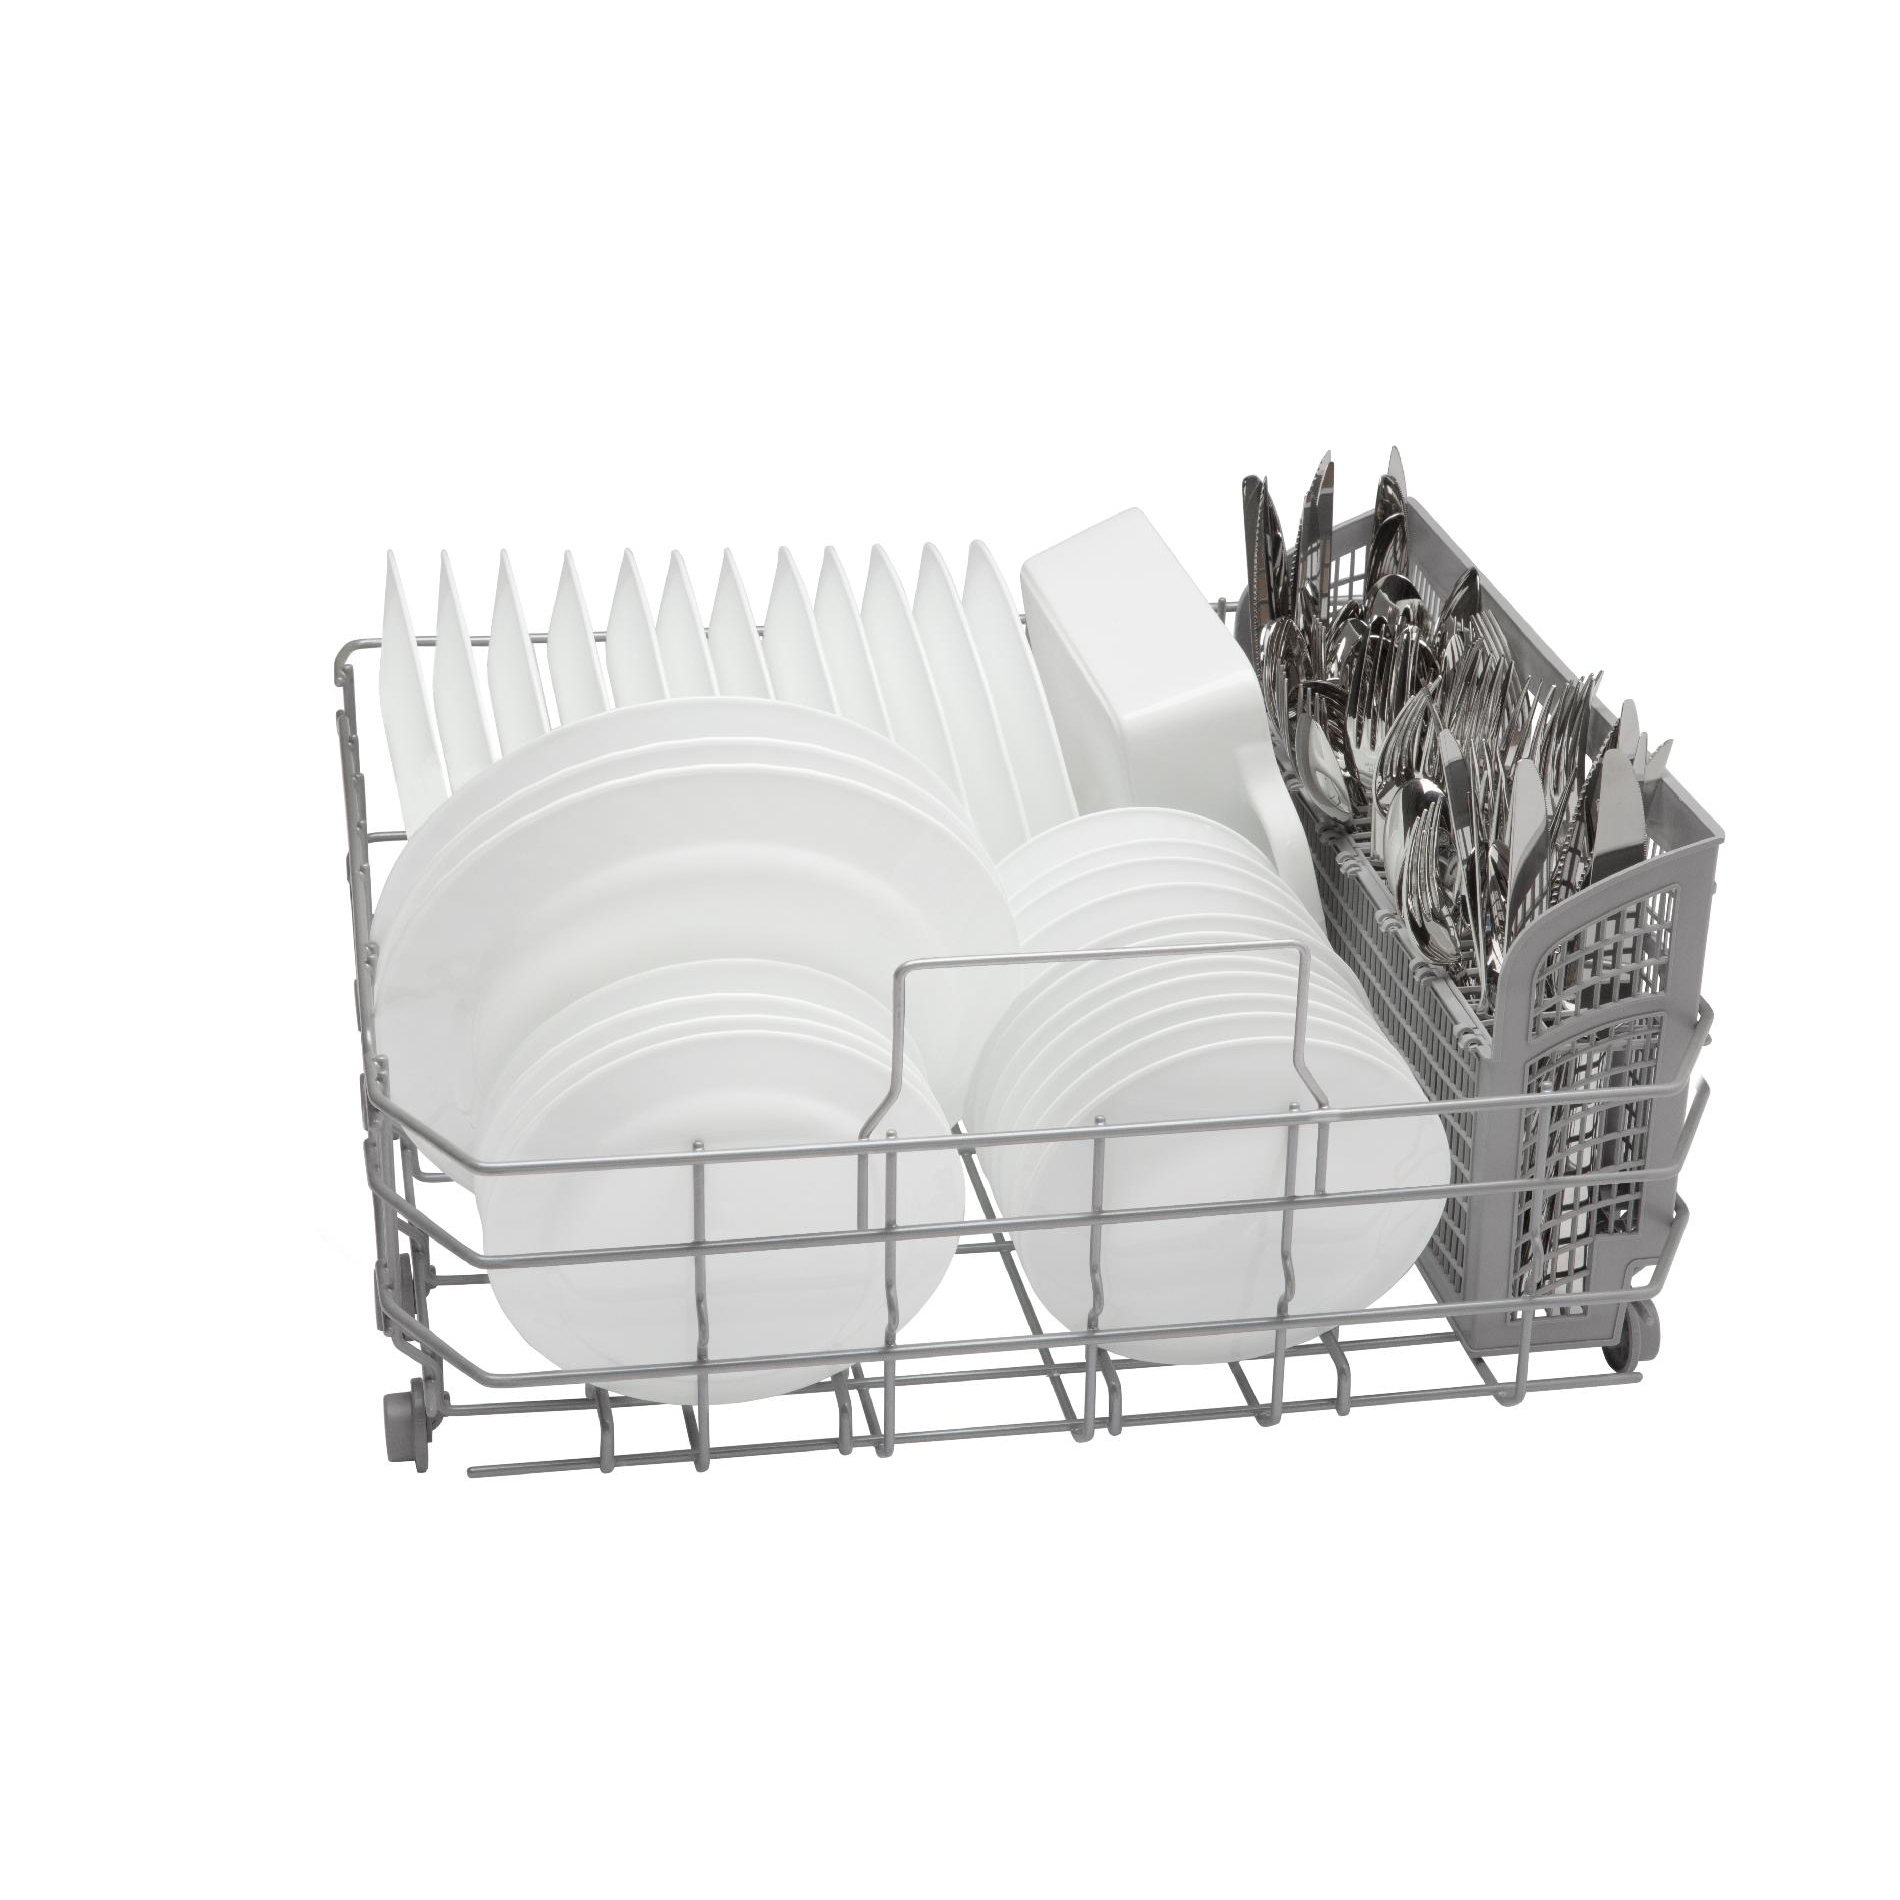 "Bosch SHX3AR72UC 24"" Built-In Dishwasher White"